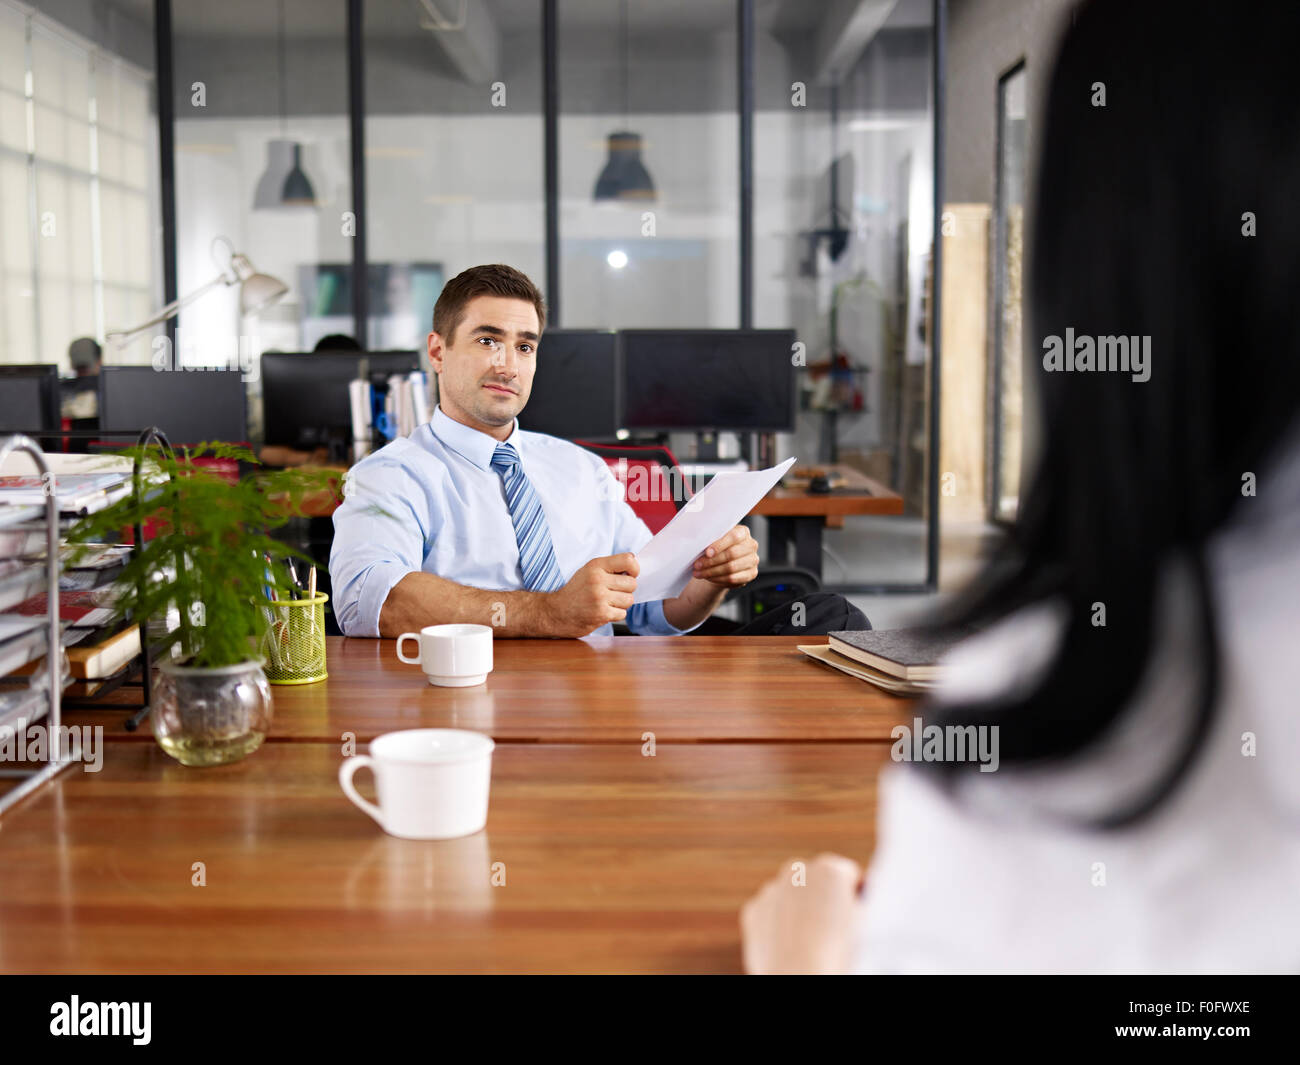 caucasian HR manager conducting an interview - Stock Image